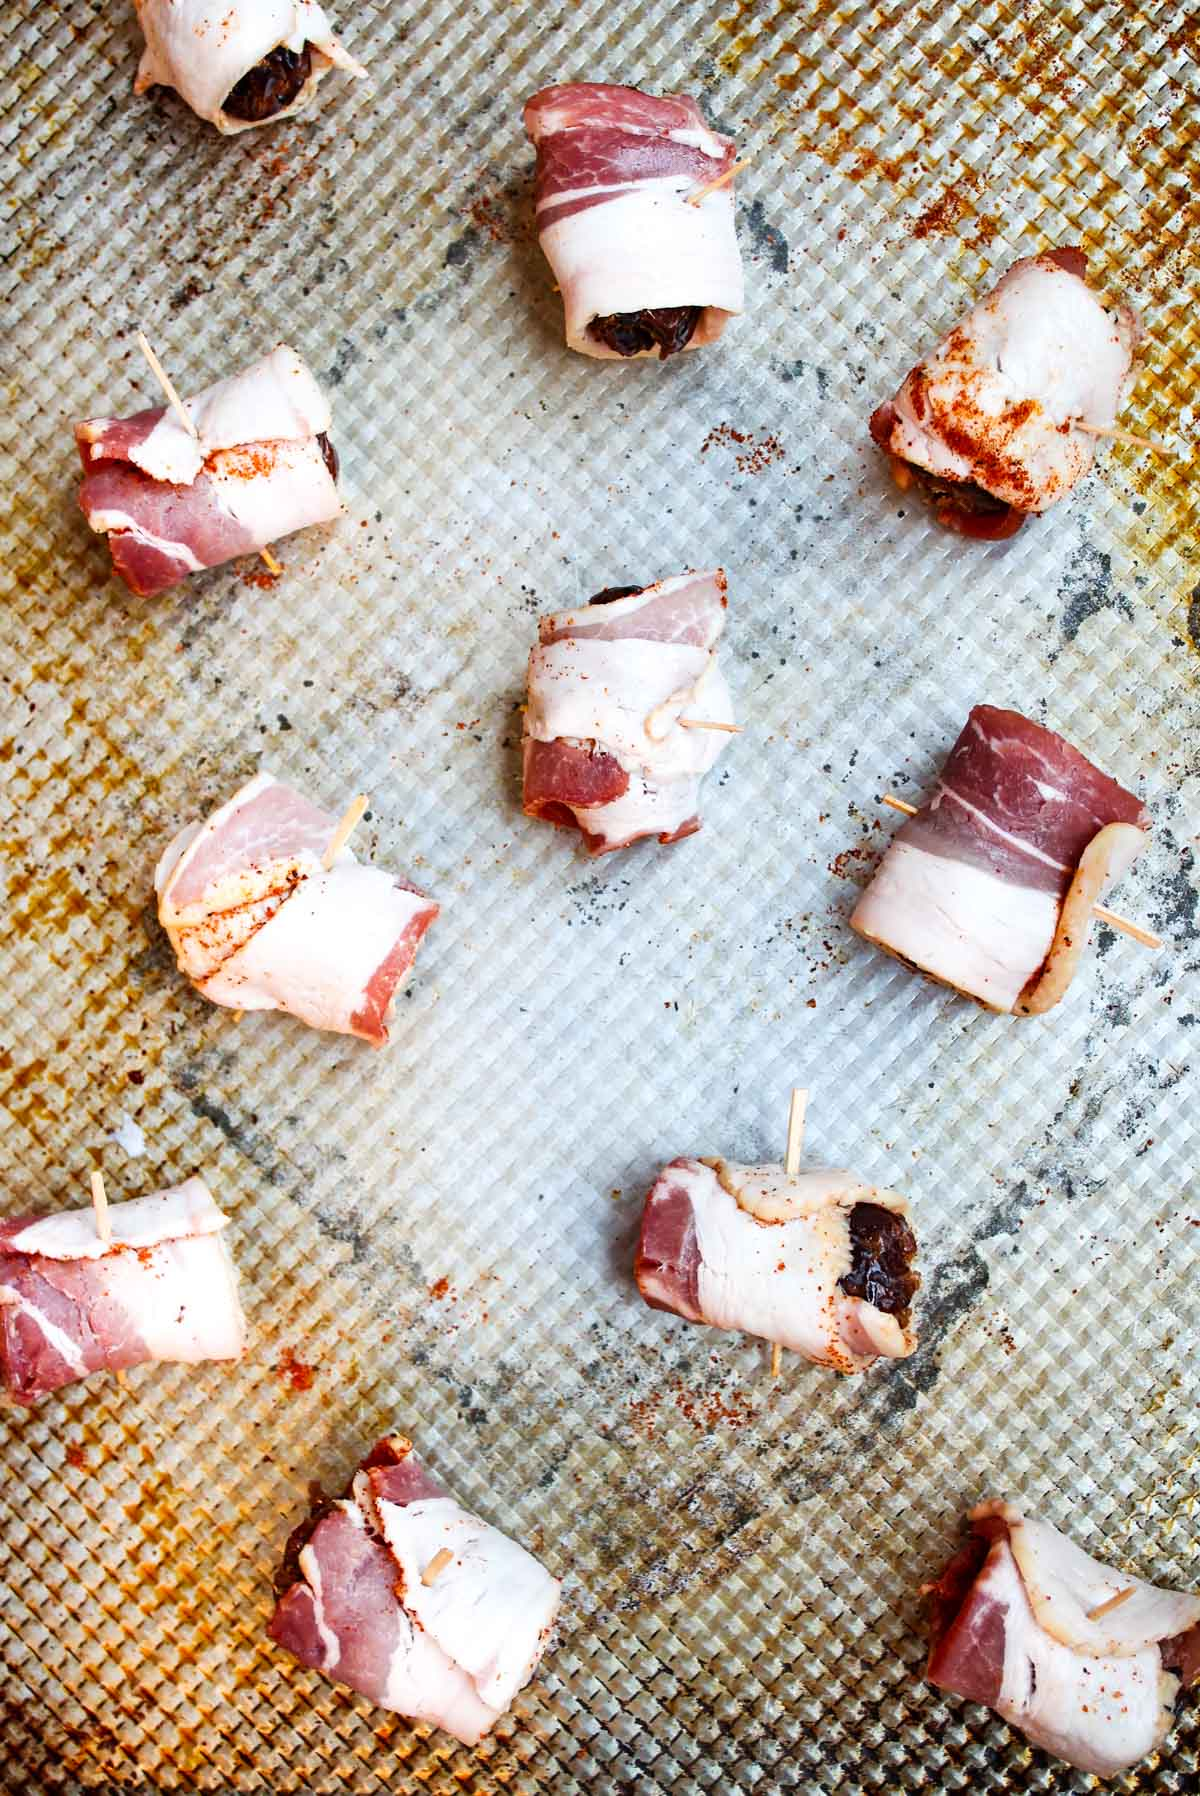 Dates have been wrapped in bacon with chili powder and are spread on a baking sheet ready to be baked.